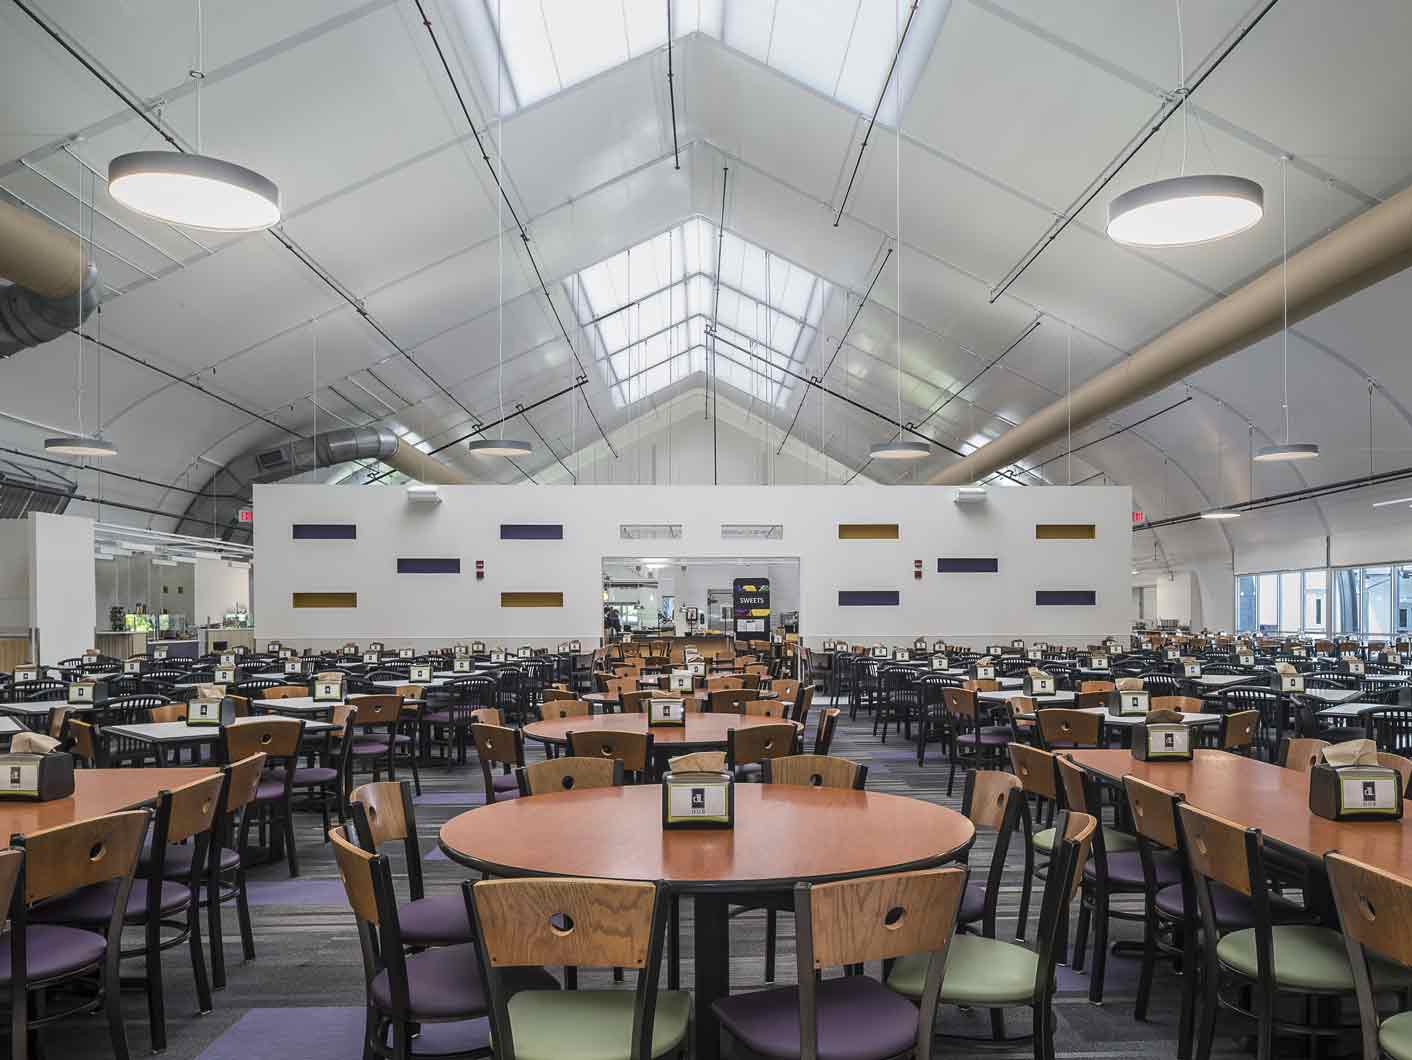 James Madison University Interim Dining Facility   Sprung Structures »  Sprung Structures